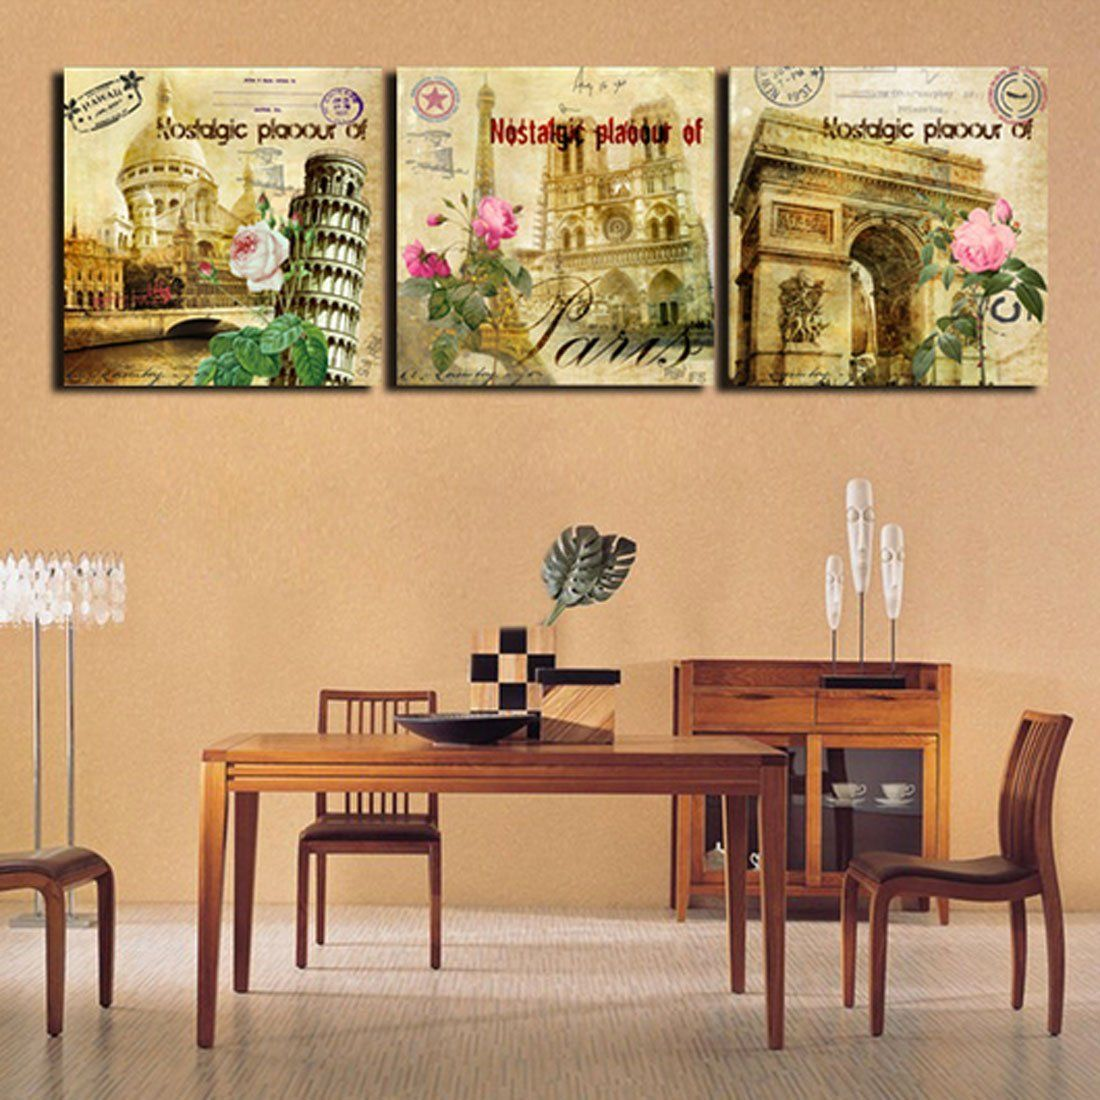 Amazon.com: Hot Sell 3 Panels 40 x 40 cm Modern Wall Painting ...